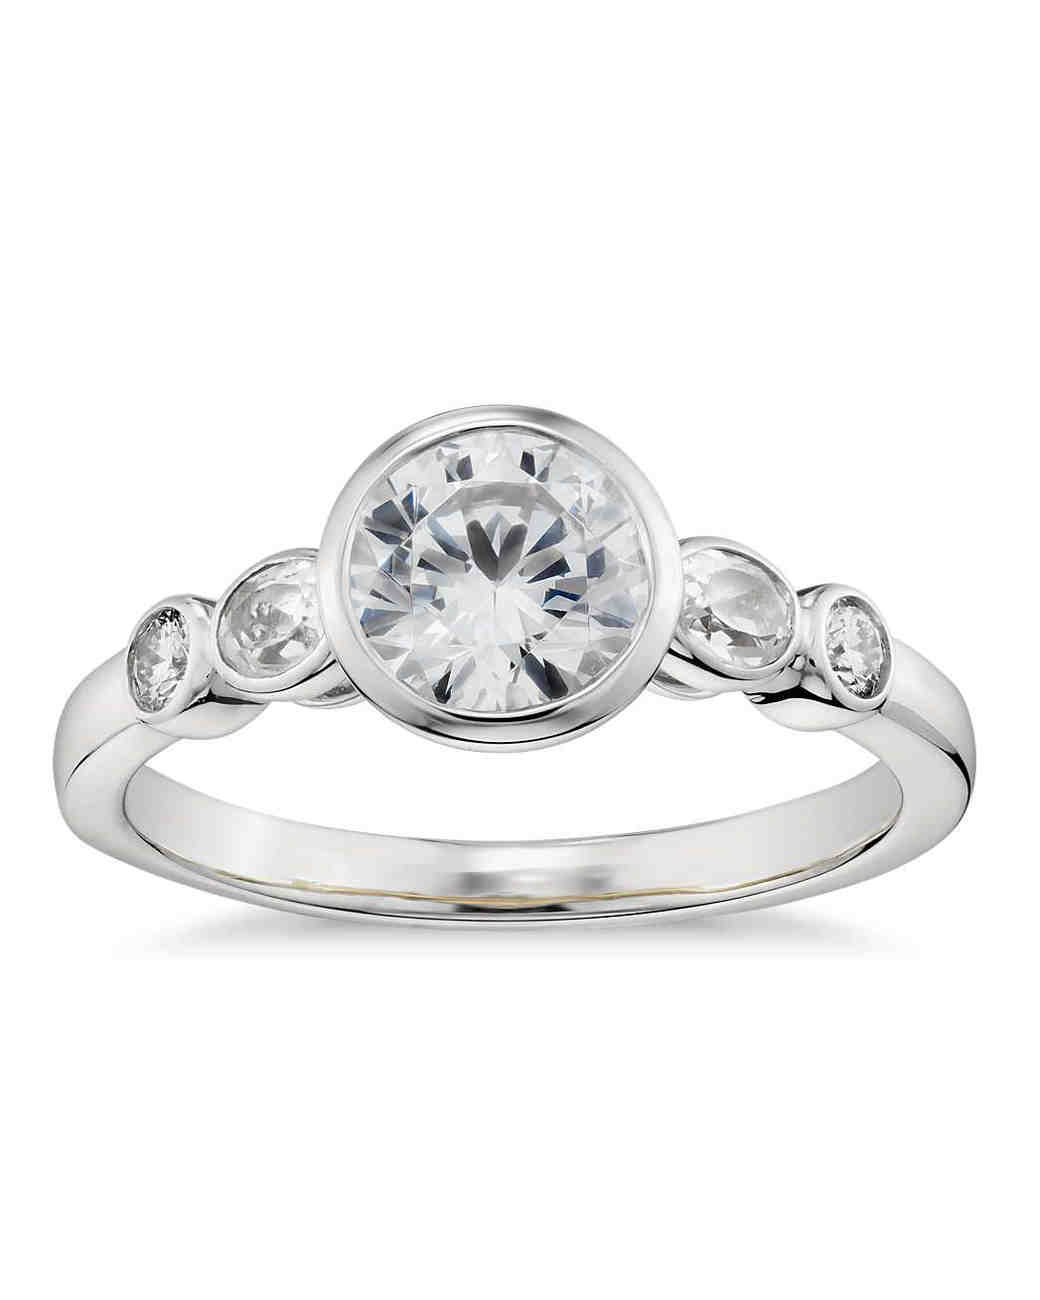 bezel setting - Wedding Ring Settings